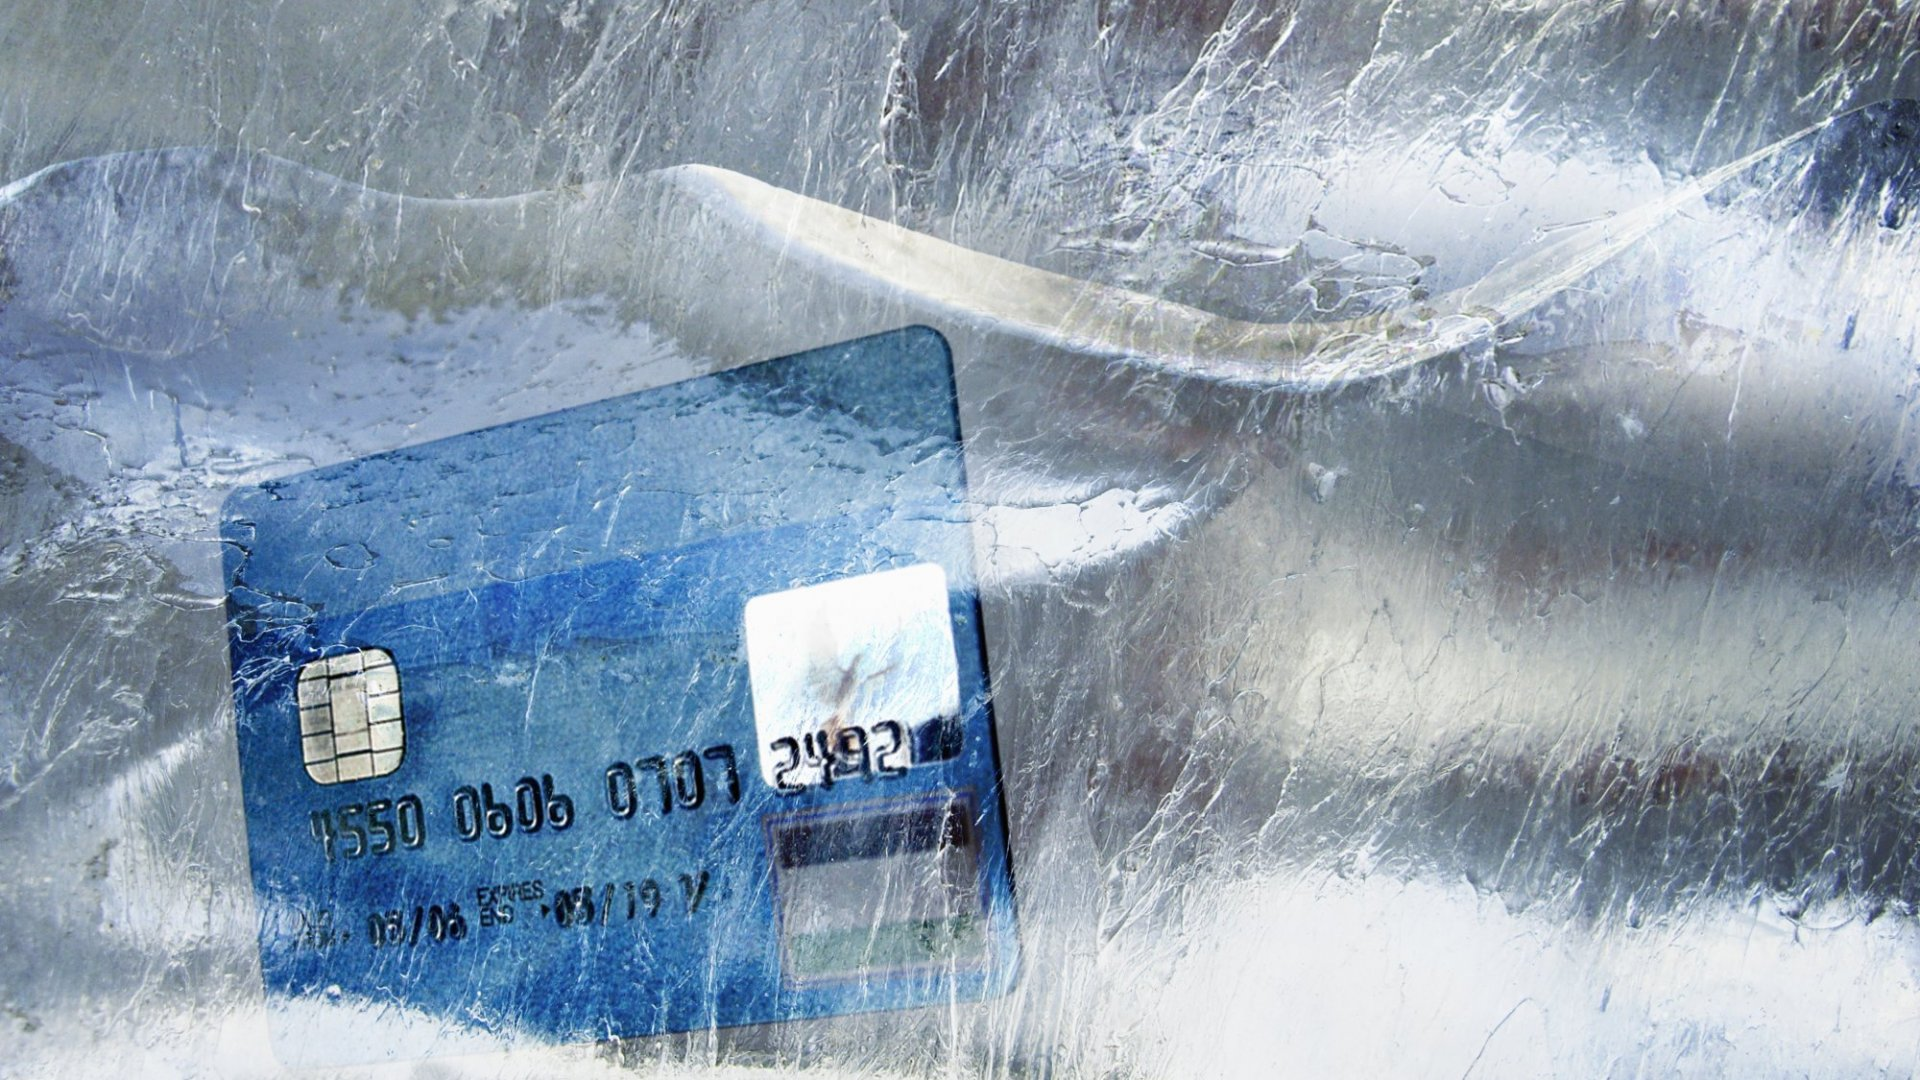 5 Things You'd Better Know Before Taking Advantage of the Free Credit Freeze Law